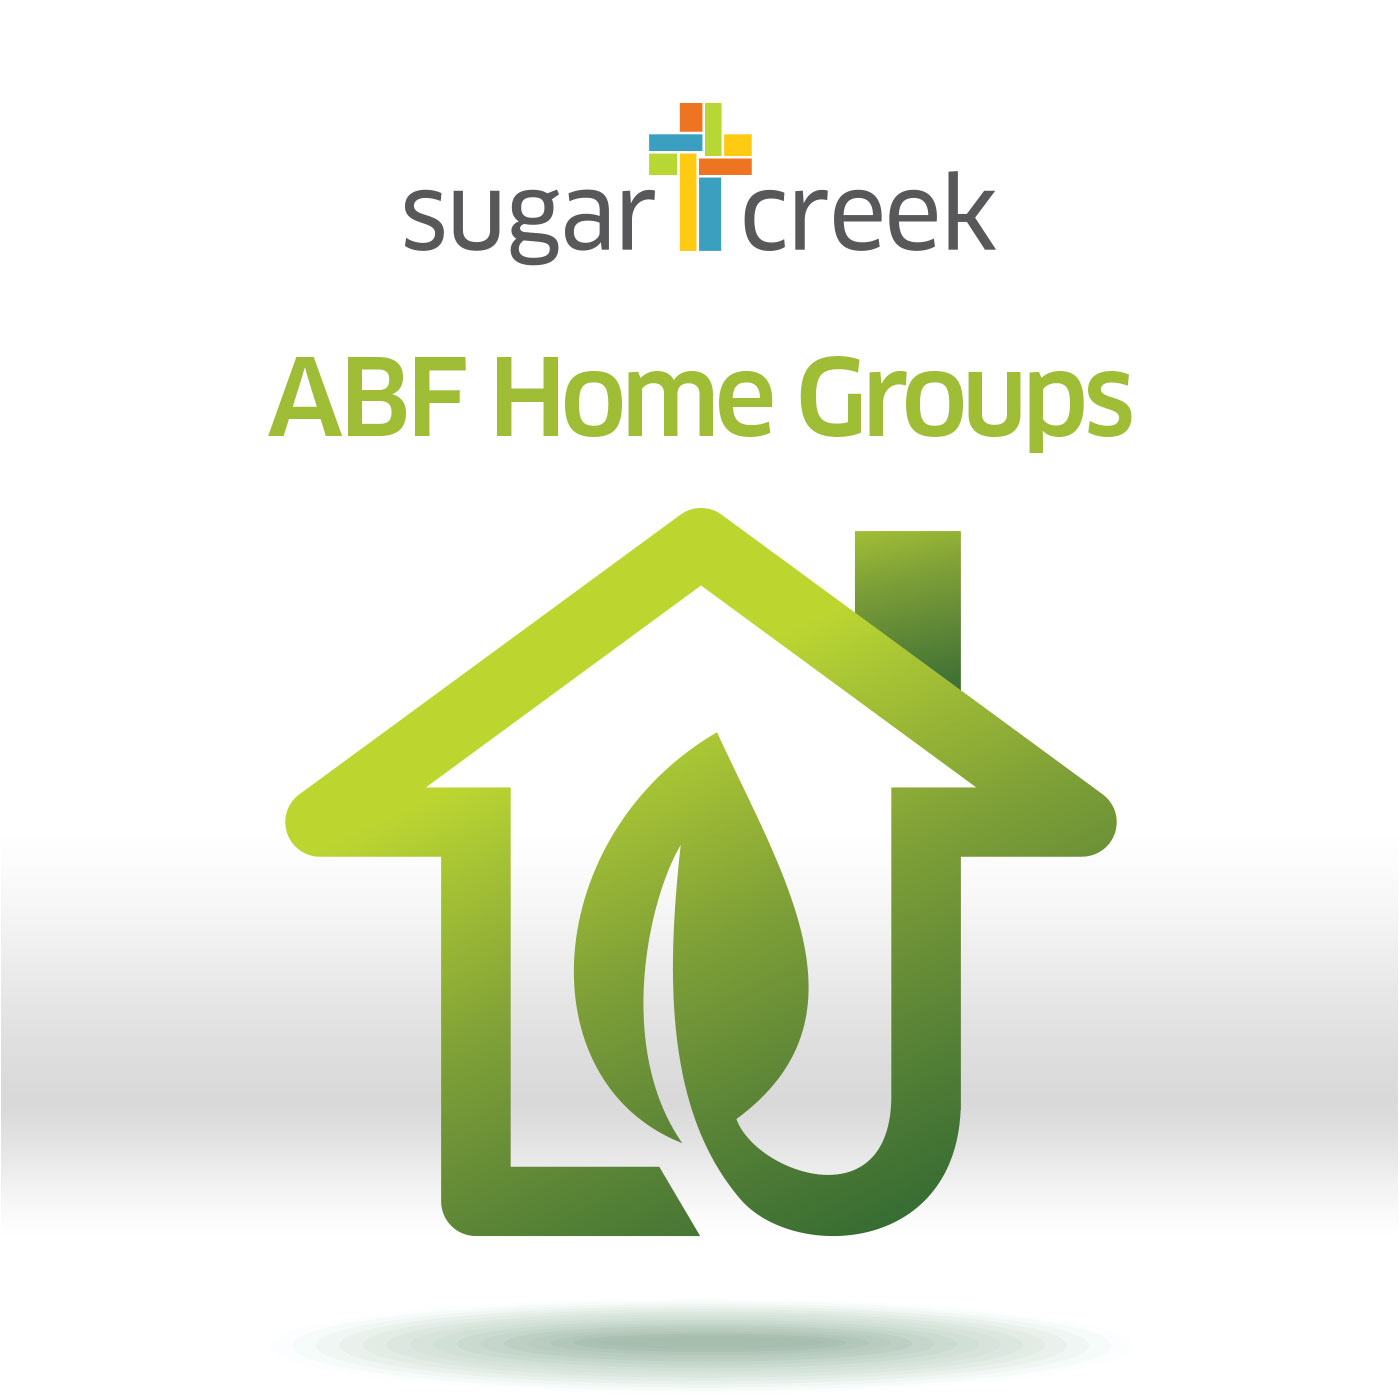 Sugar Creek ABF Home Groups